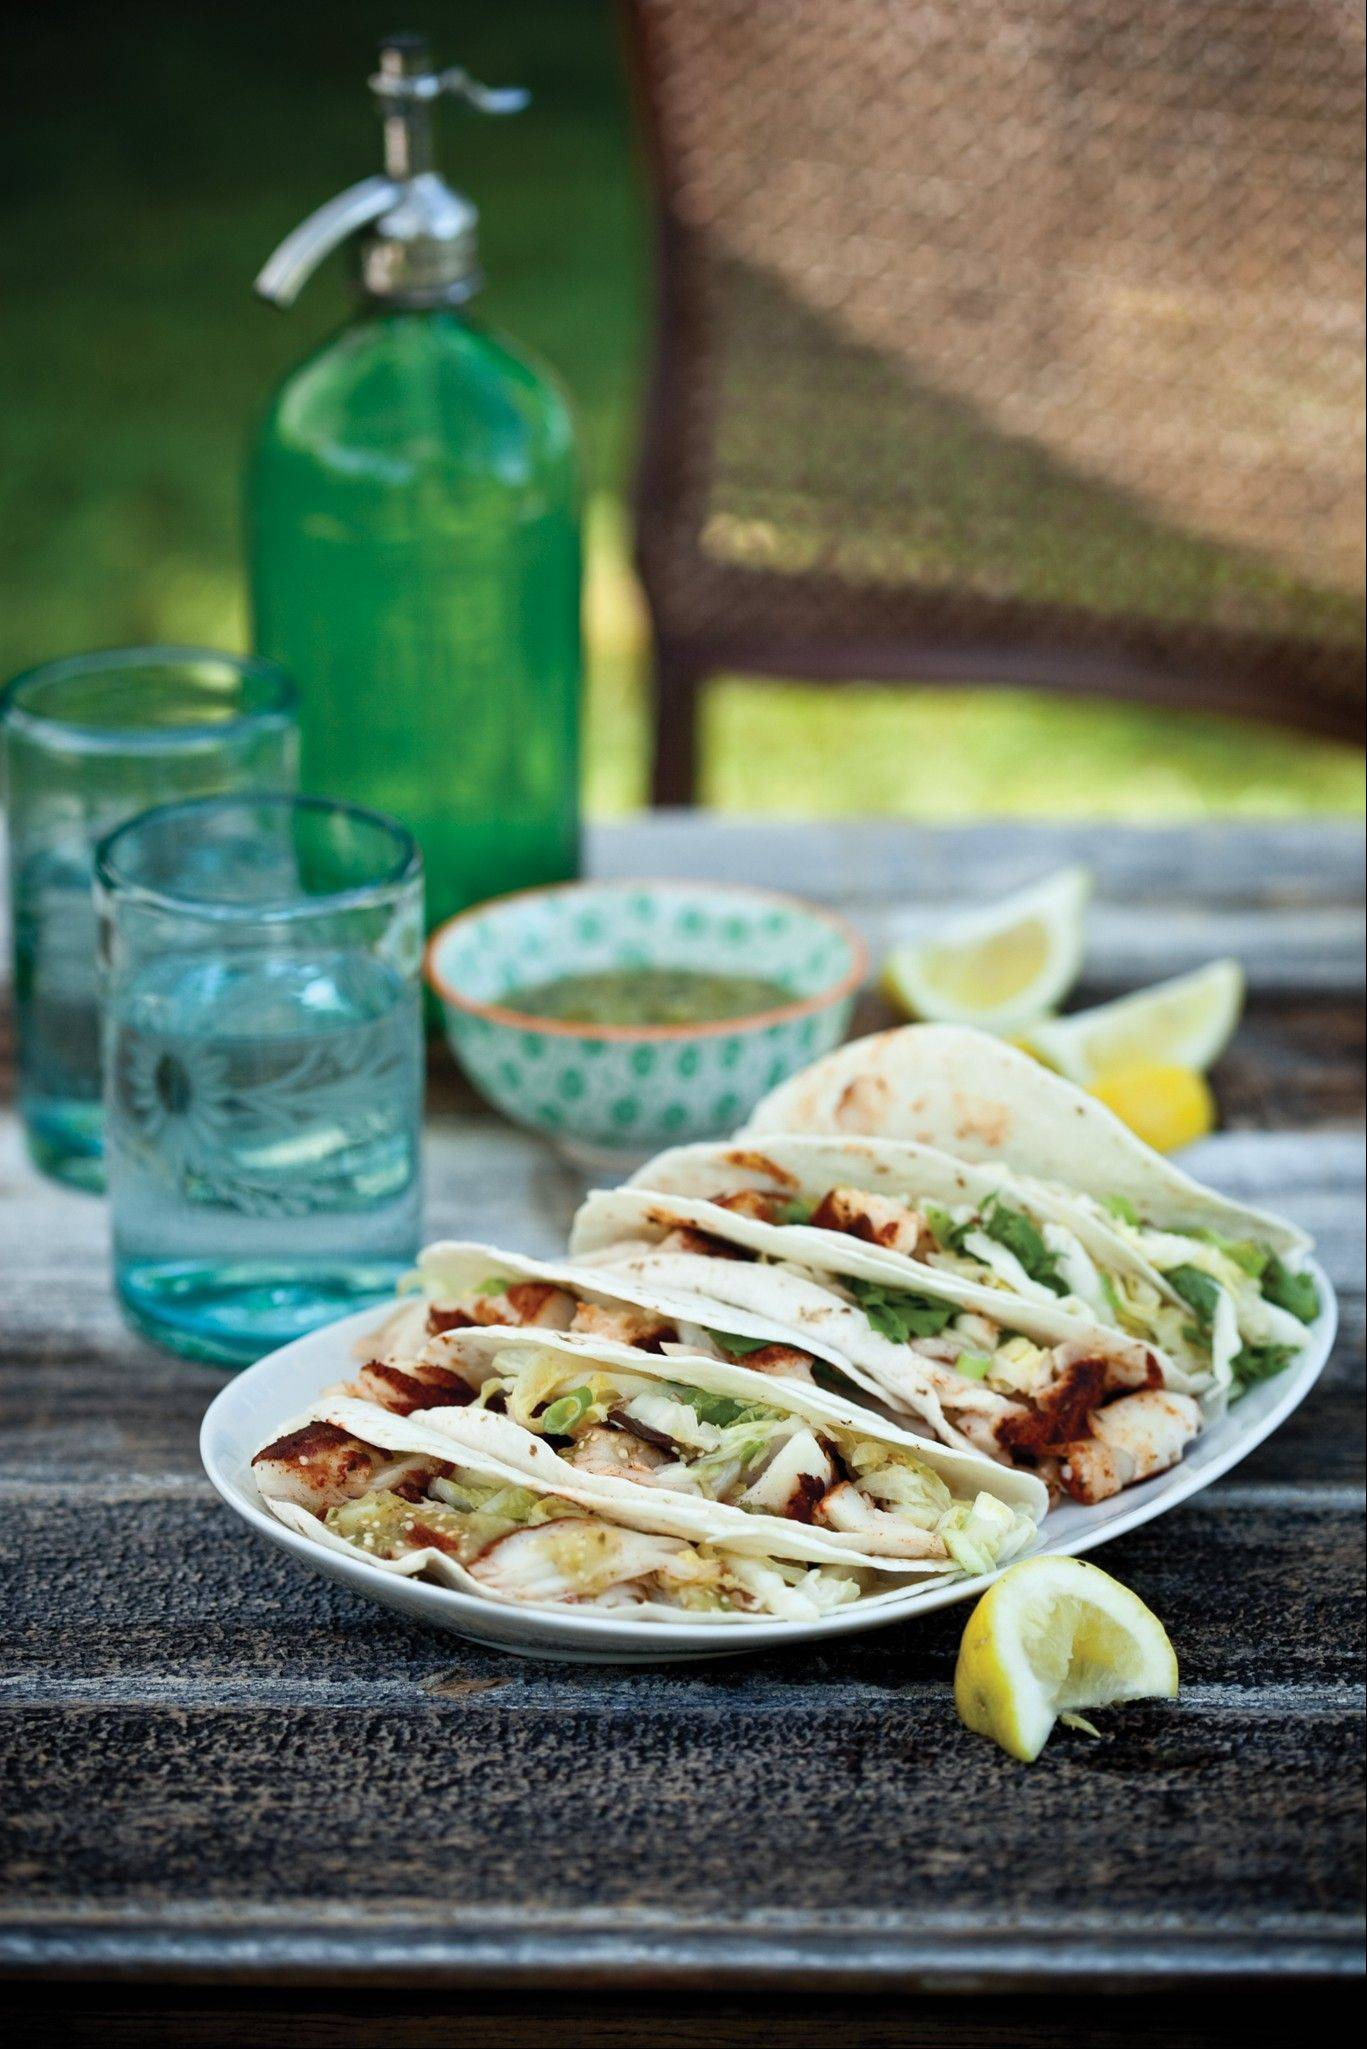 Baja Fish Tacos with Grilled Napa Cabbage Slaw